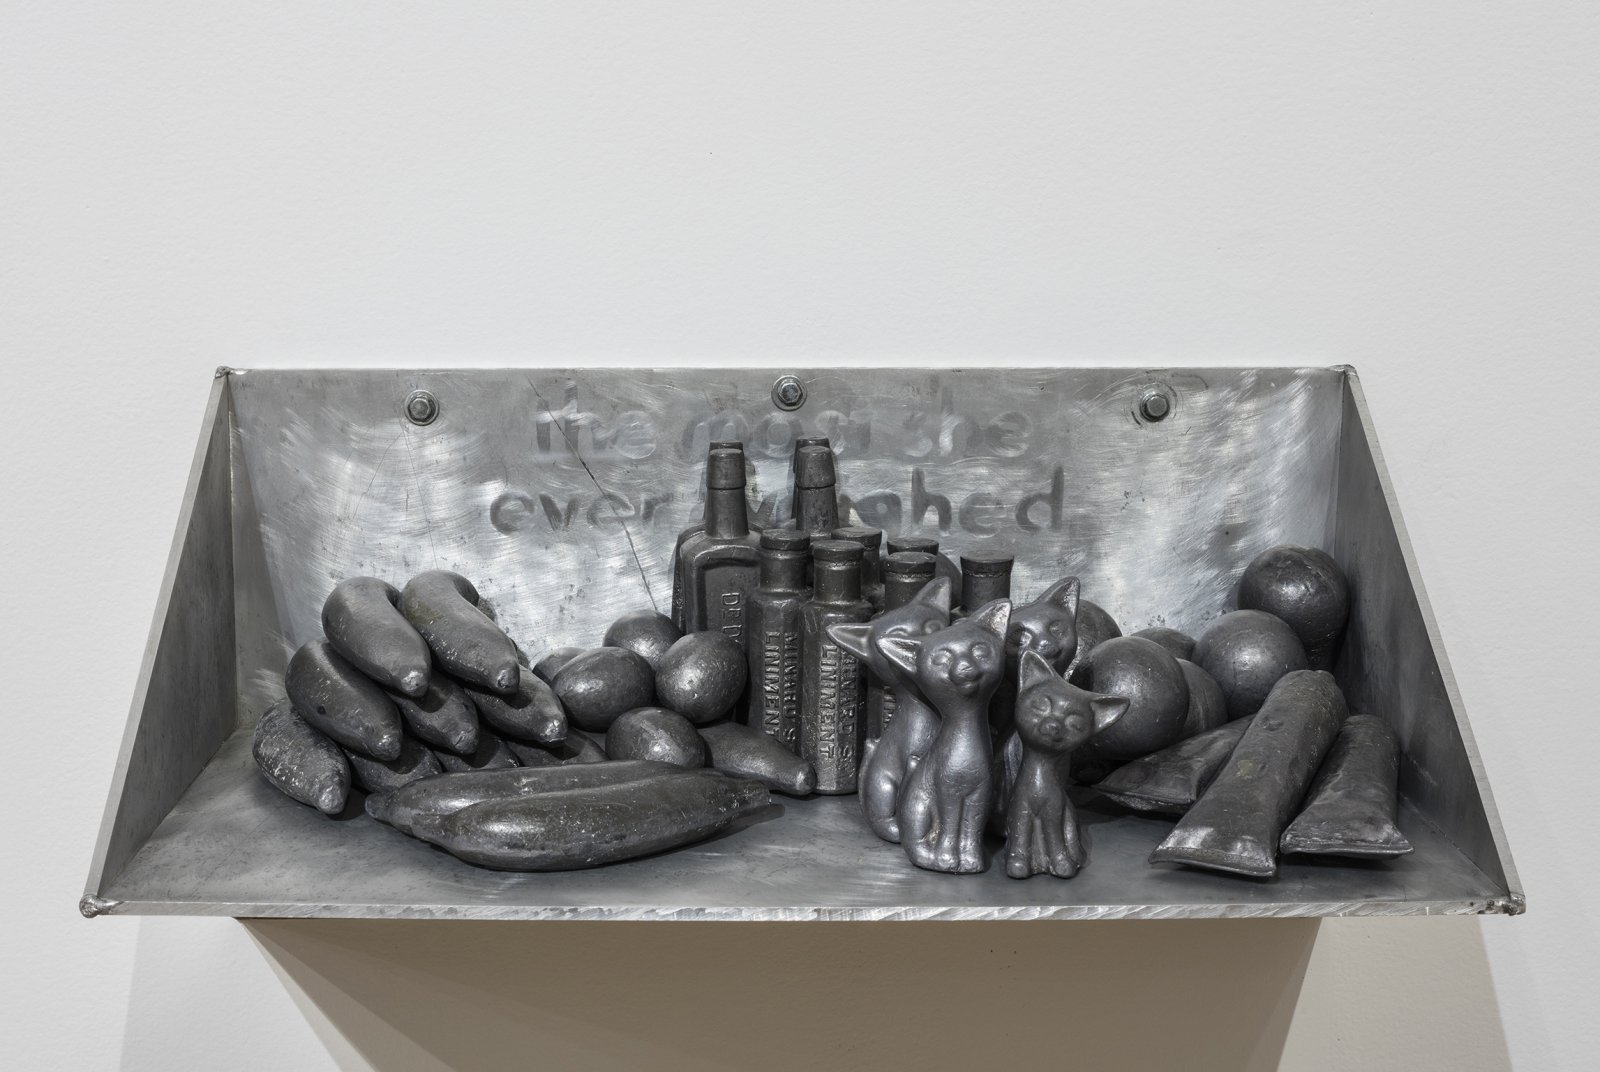 Liz Magor, The Most She Weighed / The Least She Weighed, 1982, lead, aluminum, 15 x 30 x 15 in. (38 x 77 x 38 cm), 12 x 24 x 12 in. (31 x 62 x 31 cm) by Liz Magor